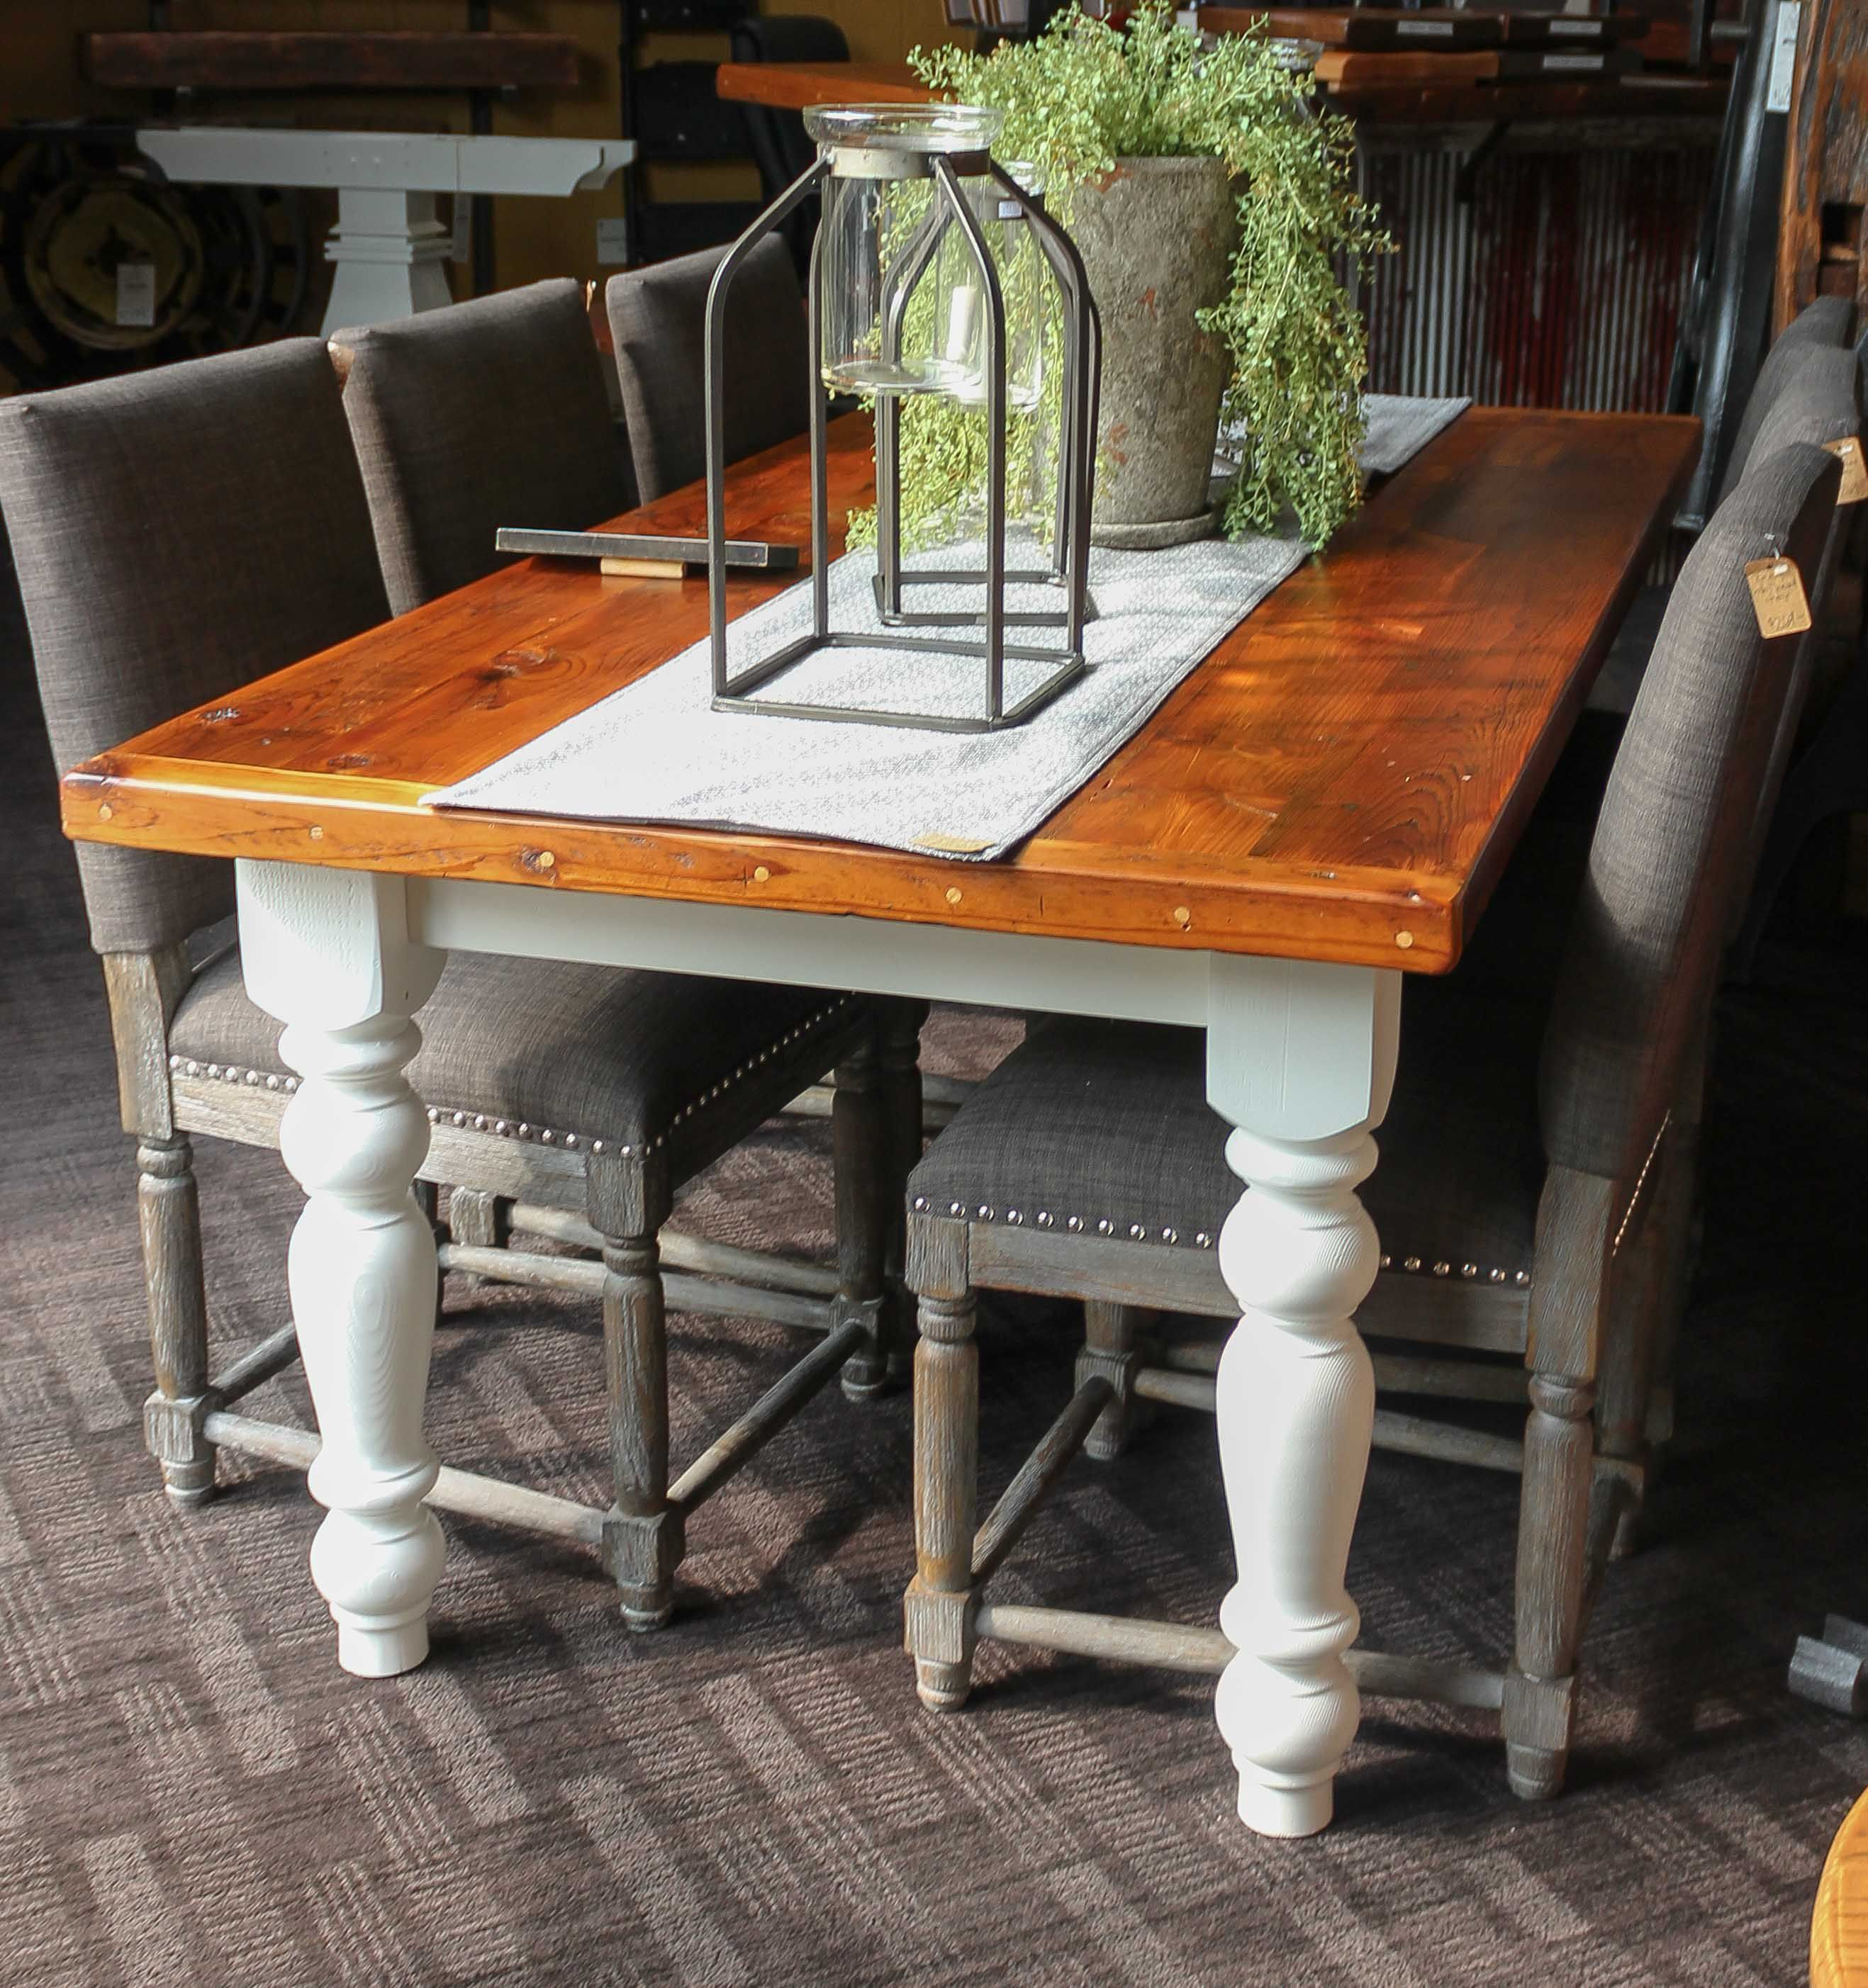 This Table Is For Sale At The Treasure Place Kitchen Tables